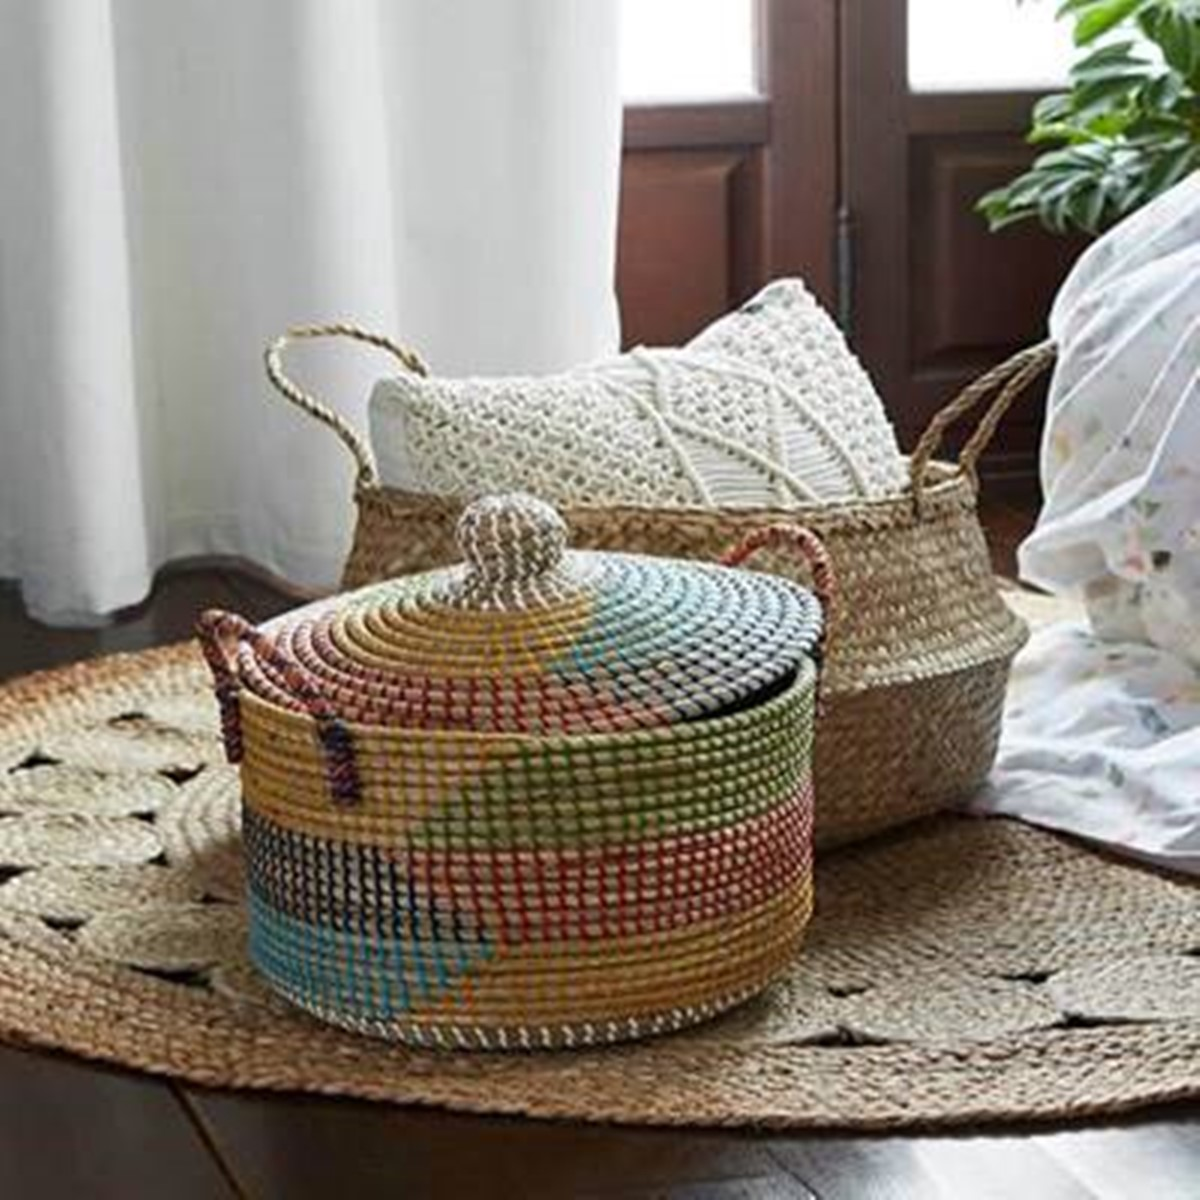 Handi-crafted products made of natural materials can make a great business